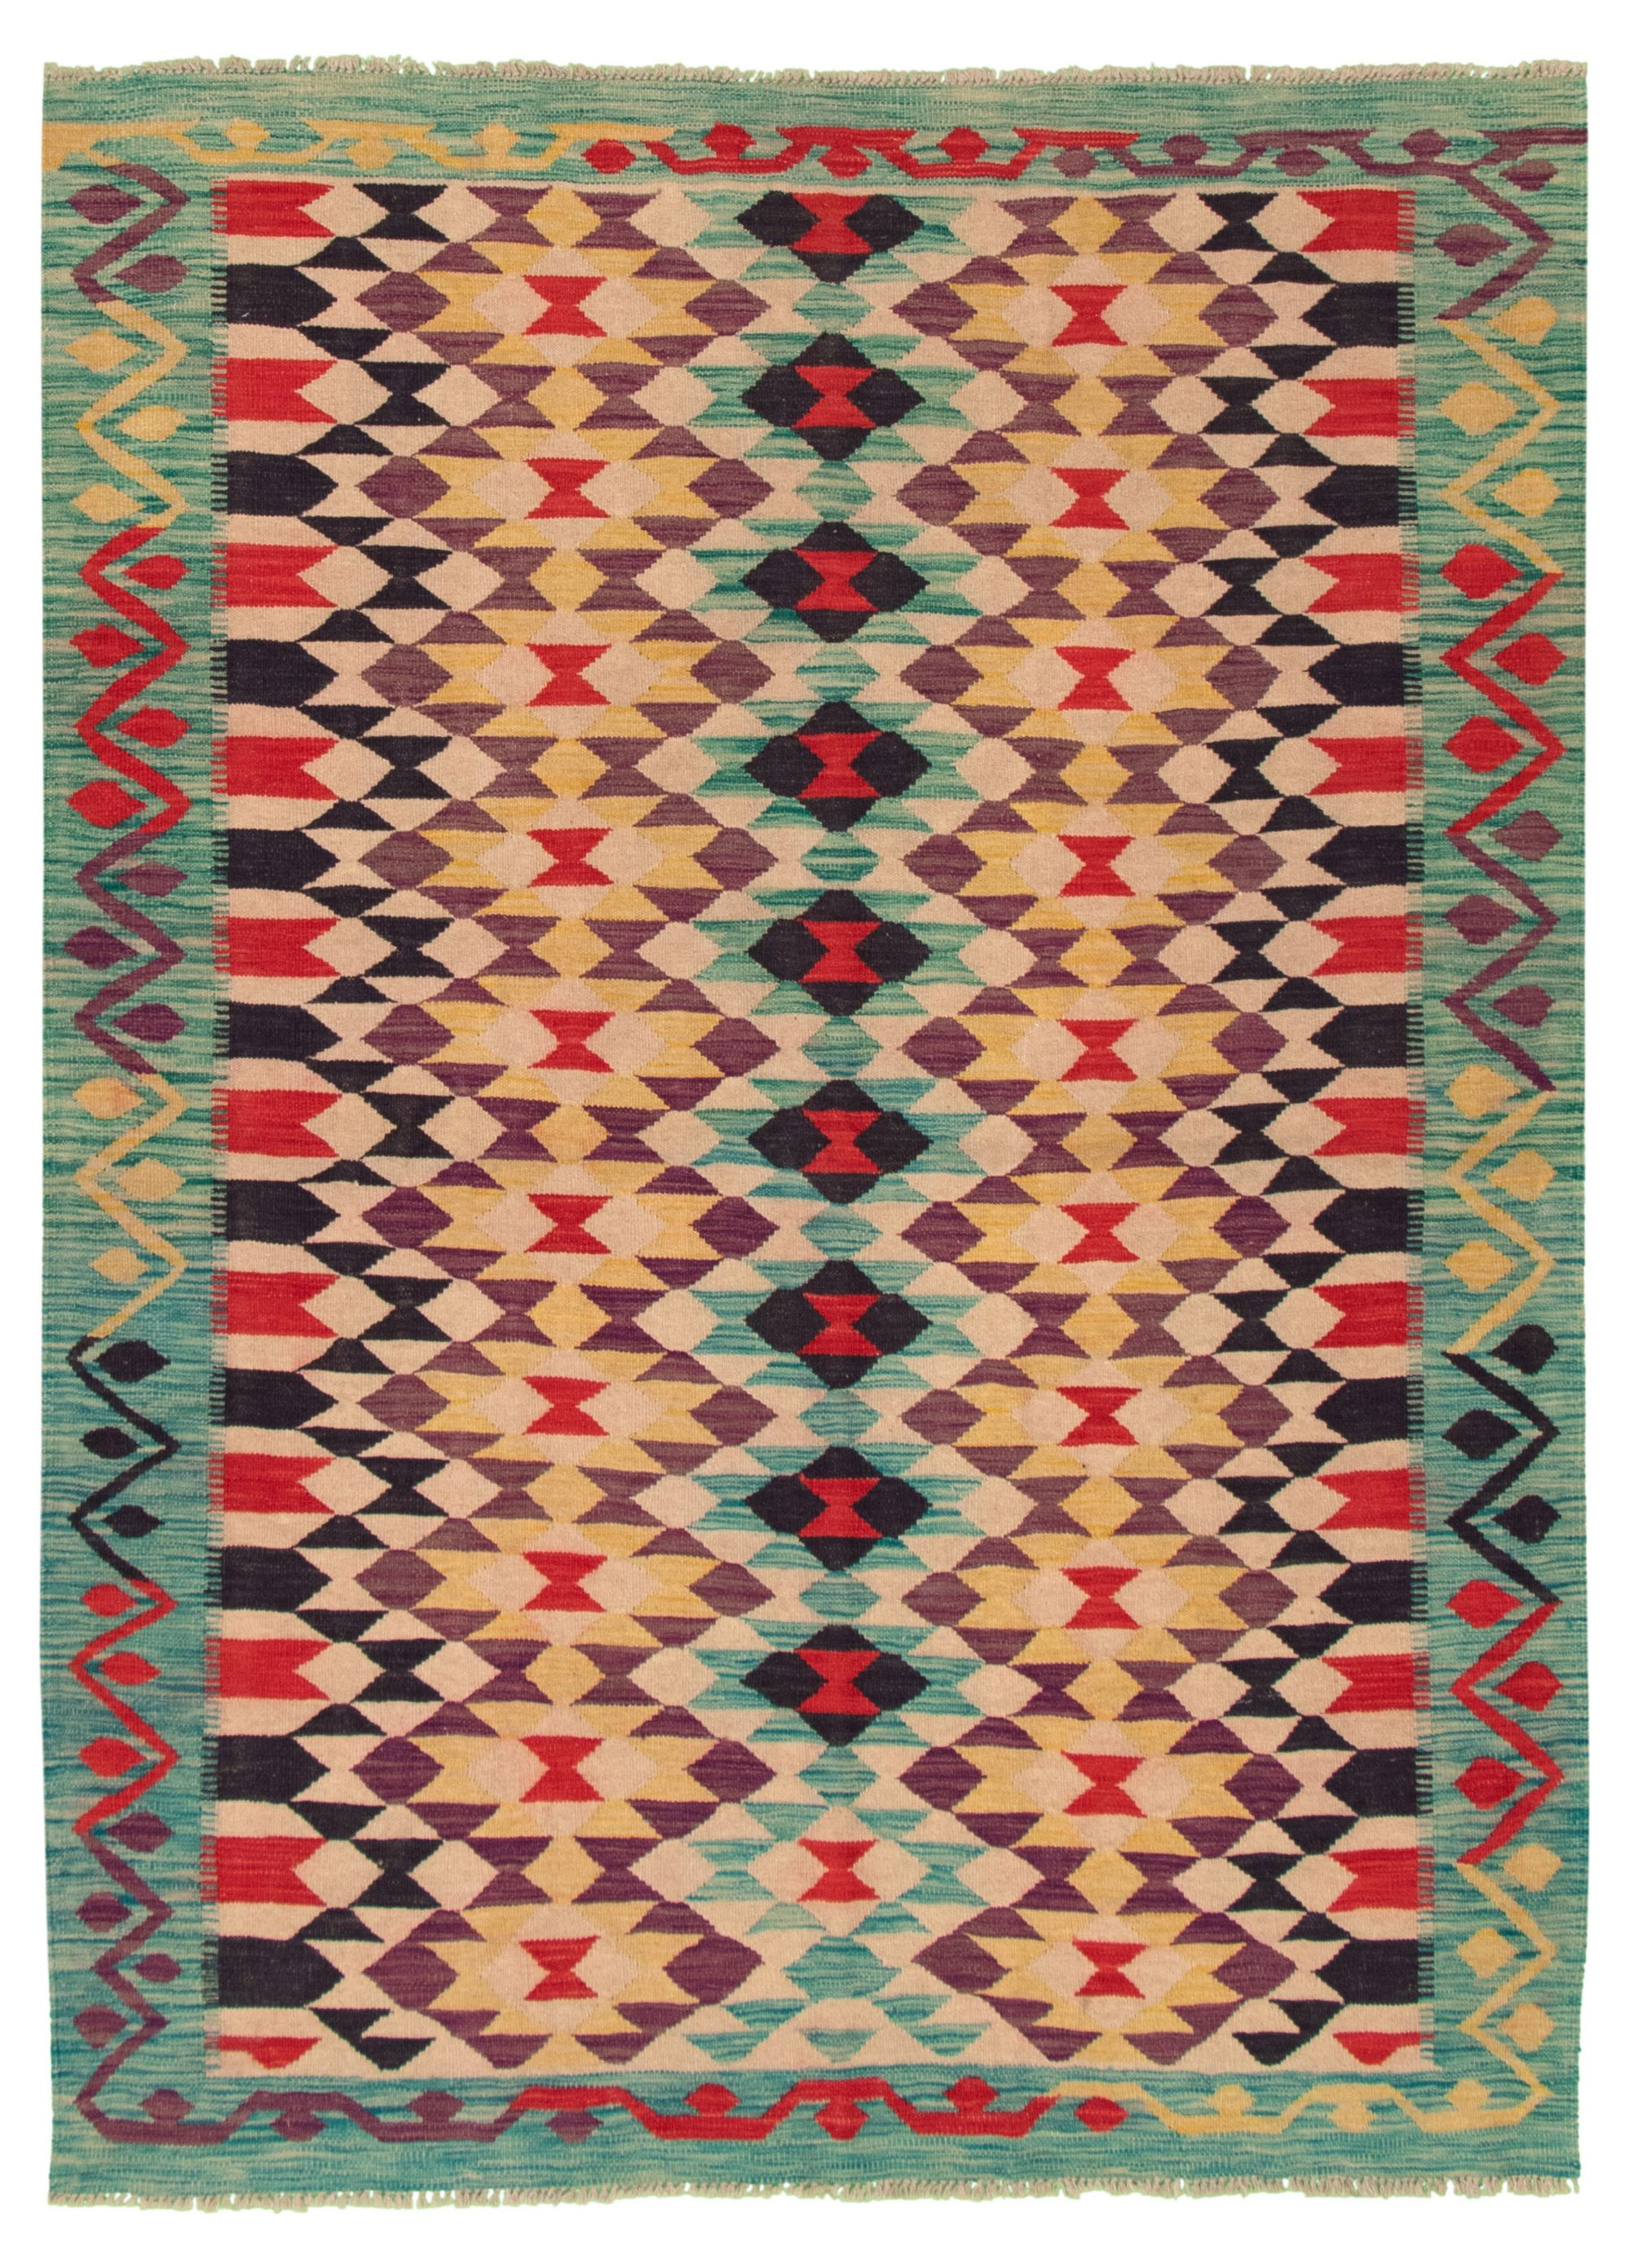 """Hand woven Old Style Beige, Turquoise Wool Kilim 6'0"""" x 8'3"""" Size: 6'0"""" x 8'3"""""""